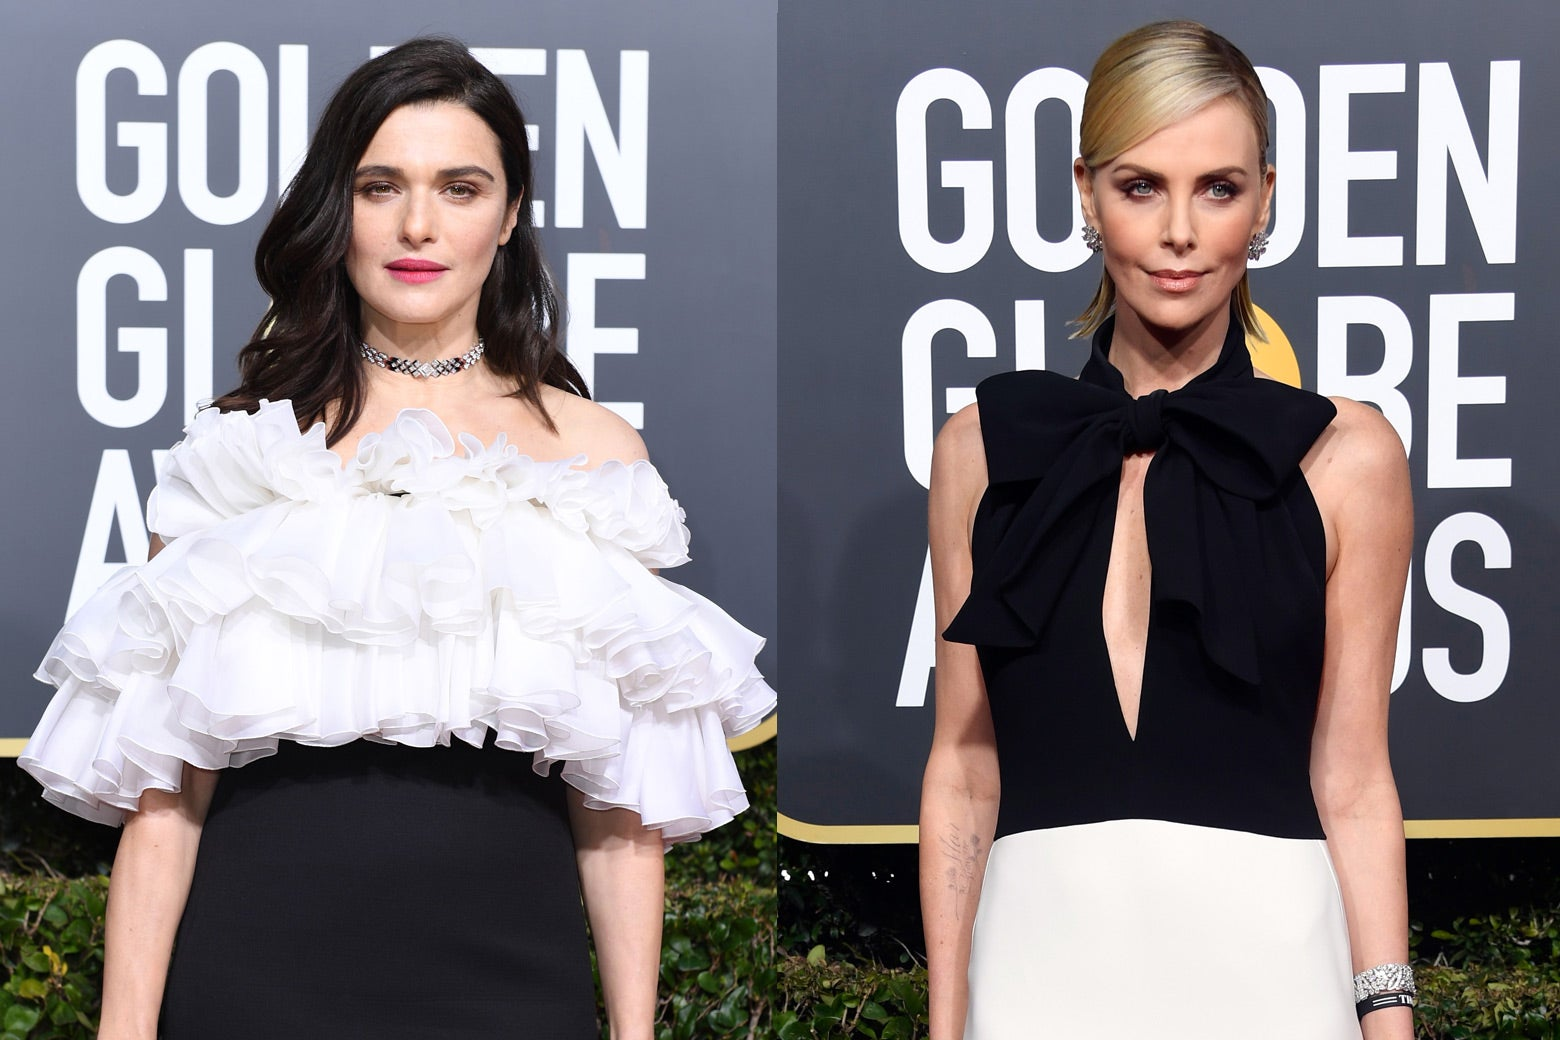 Rachel Weisz and Charlize Theron at the 2019 Golden Globes.